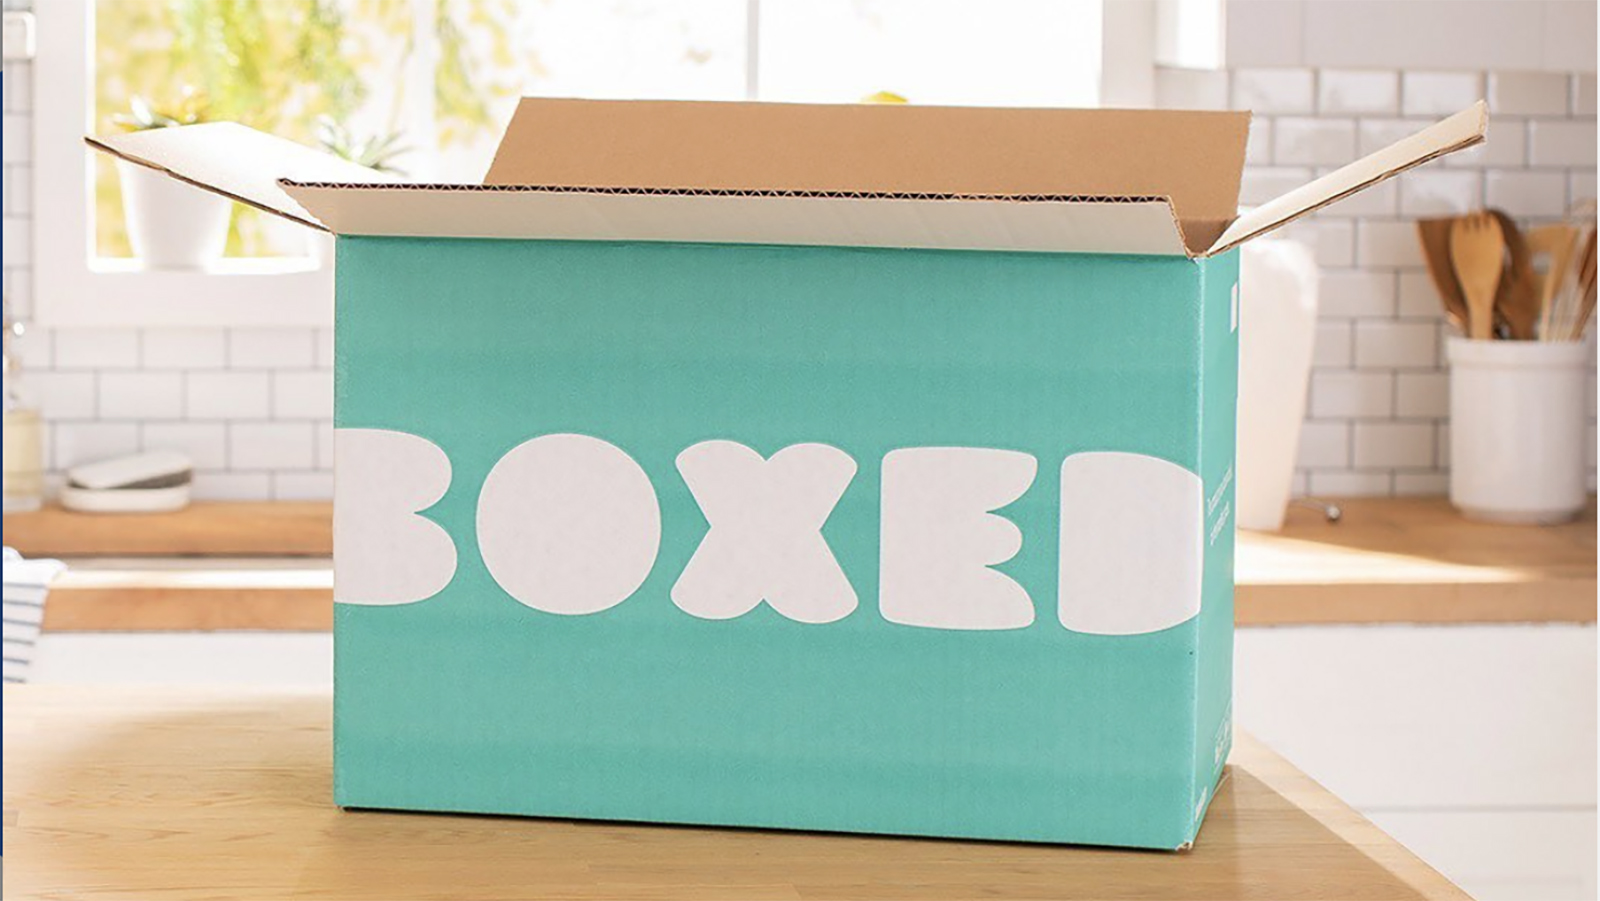 Grocery retailer Boxed is going public in an $887 million SPAC deal